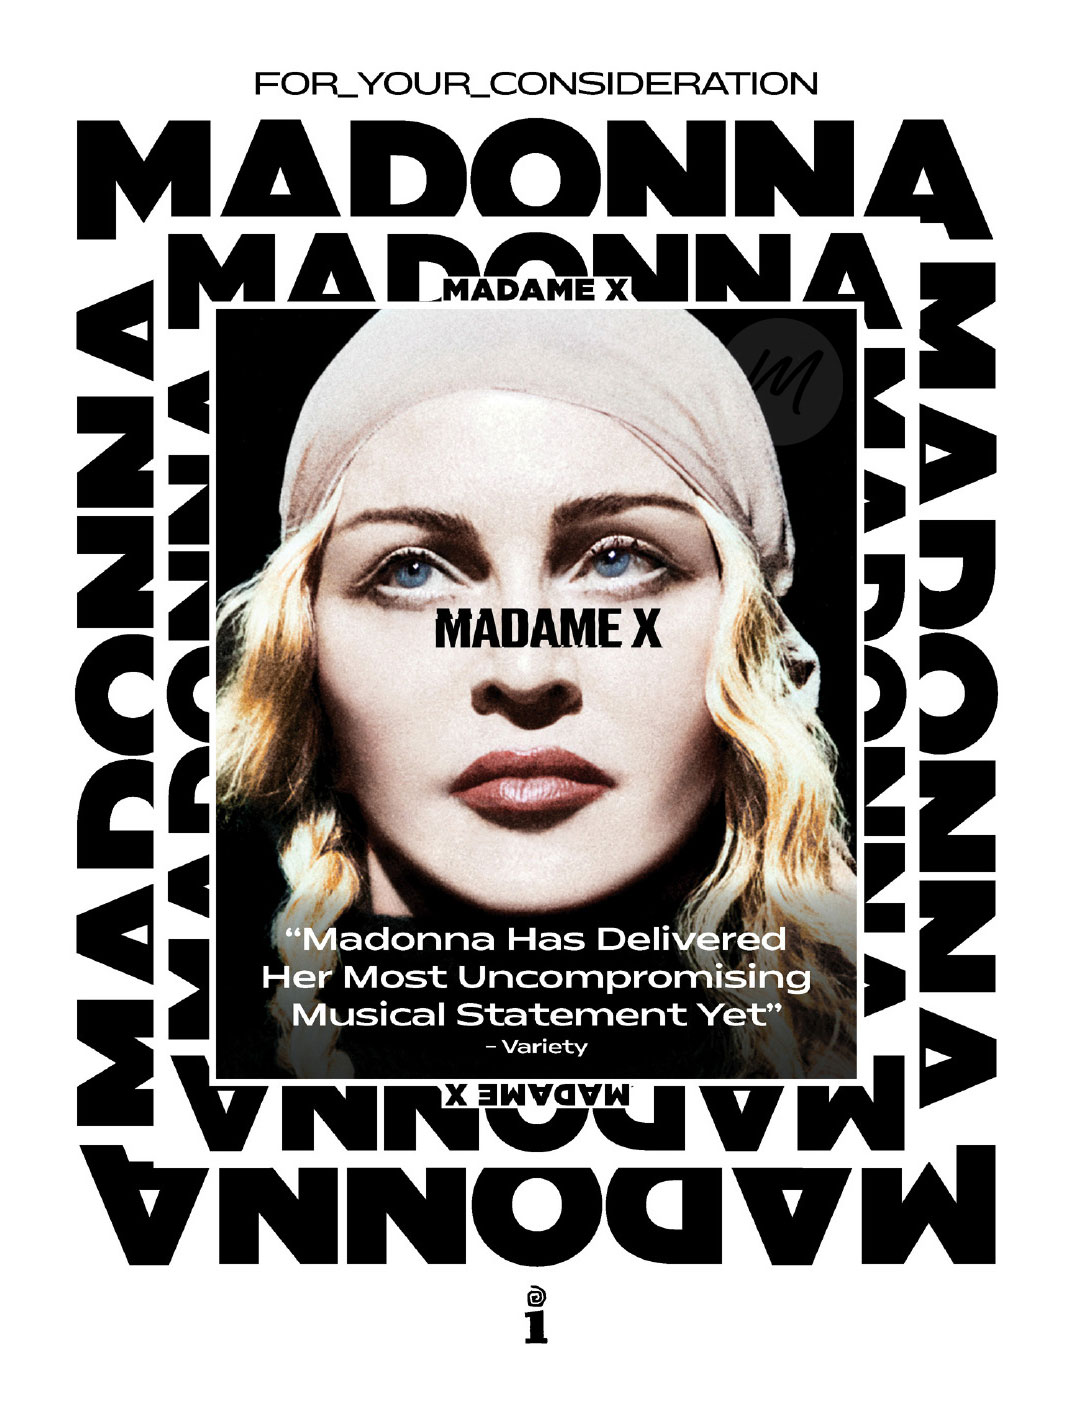 Madame X Is Not A Grammy Nominee Madonnatribe